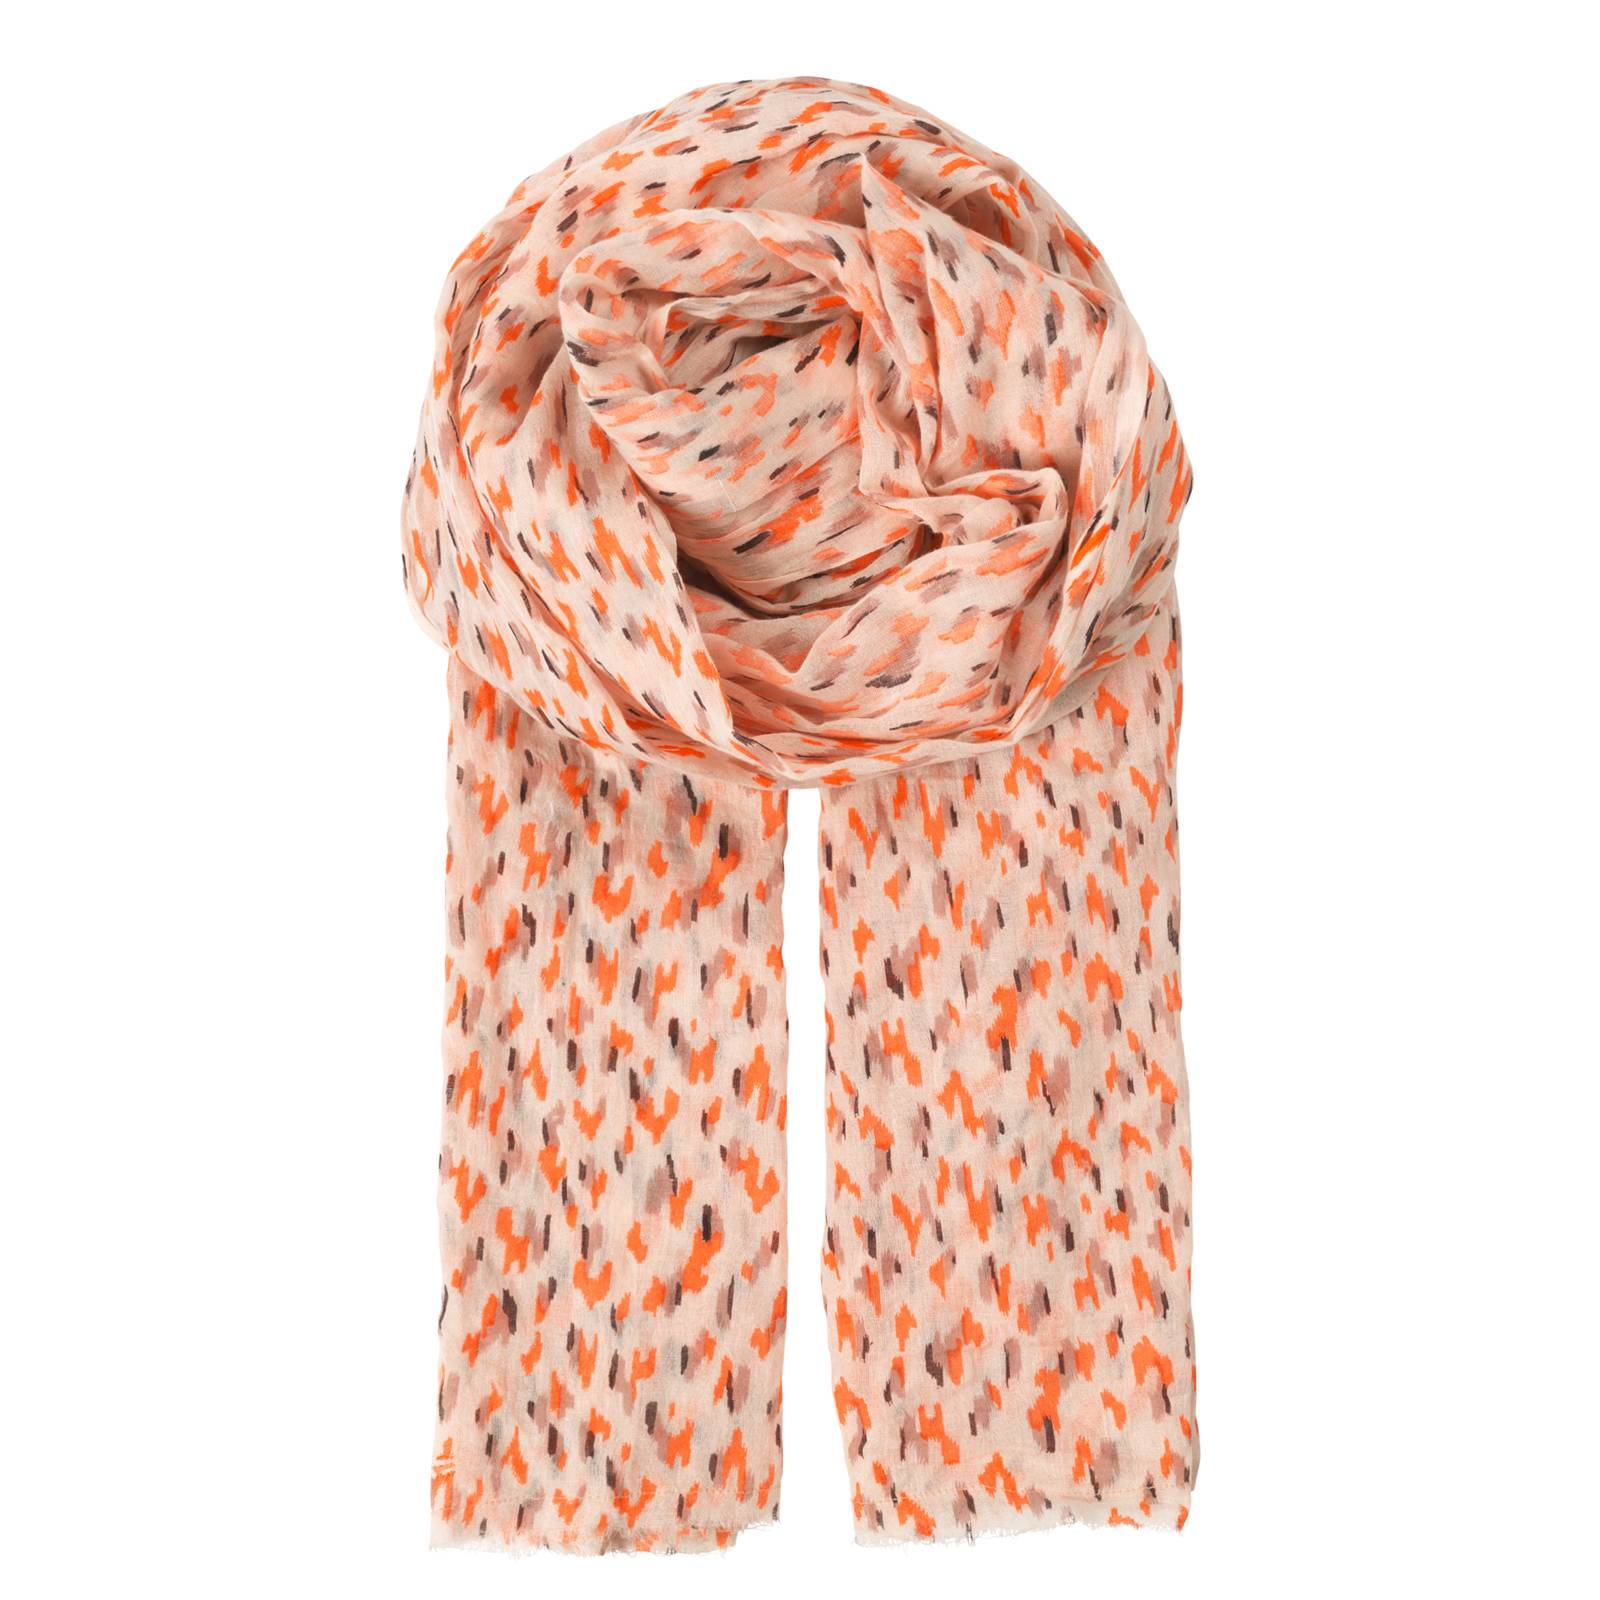 Beck Sondergaard Bushwick - Foulard - orange - Beck Sondergaard -  SIZE 100 X 180 CM - 100% COTTON FIN Foulard  Couleur: Orange  Référence: 1621068